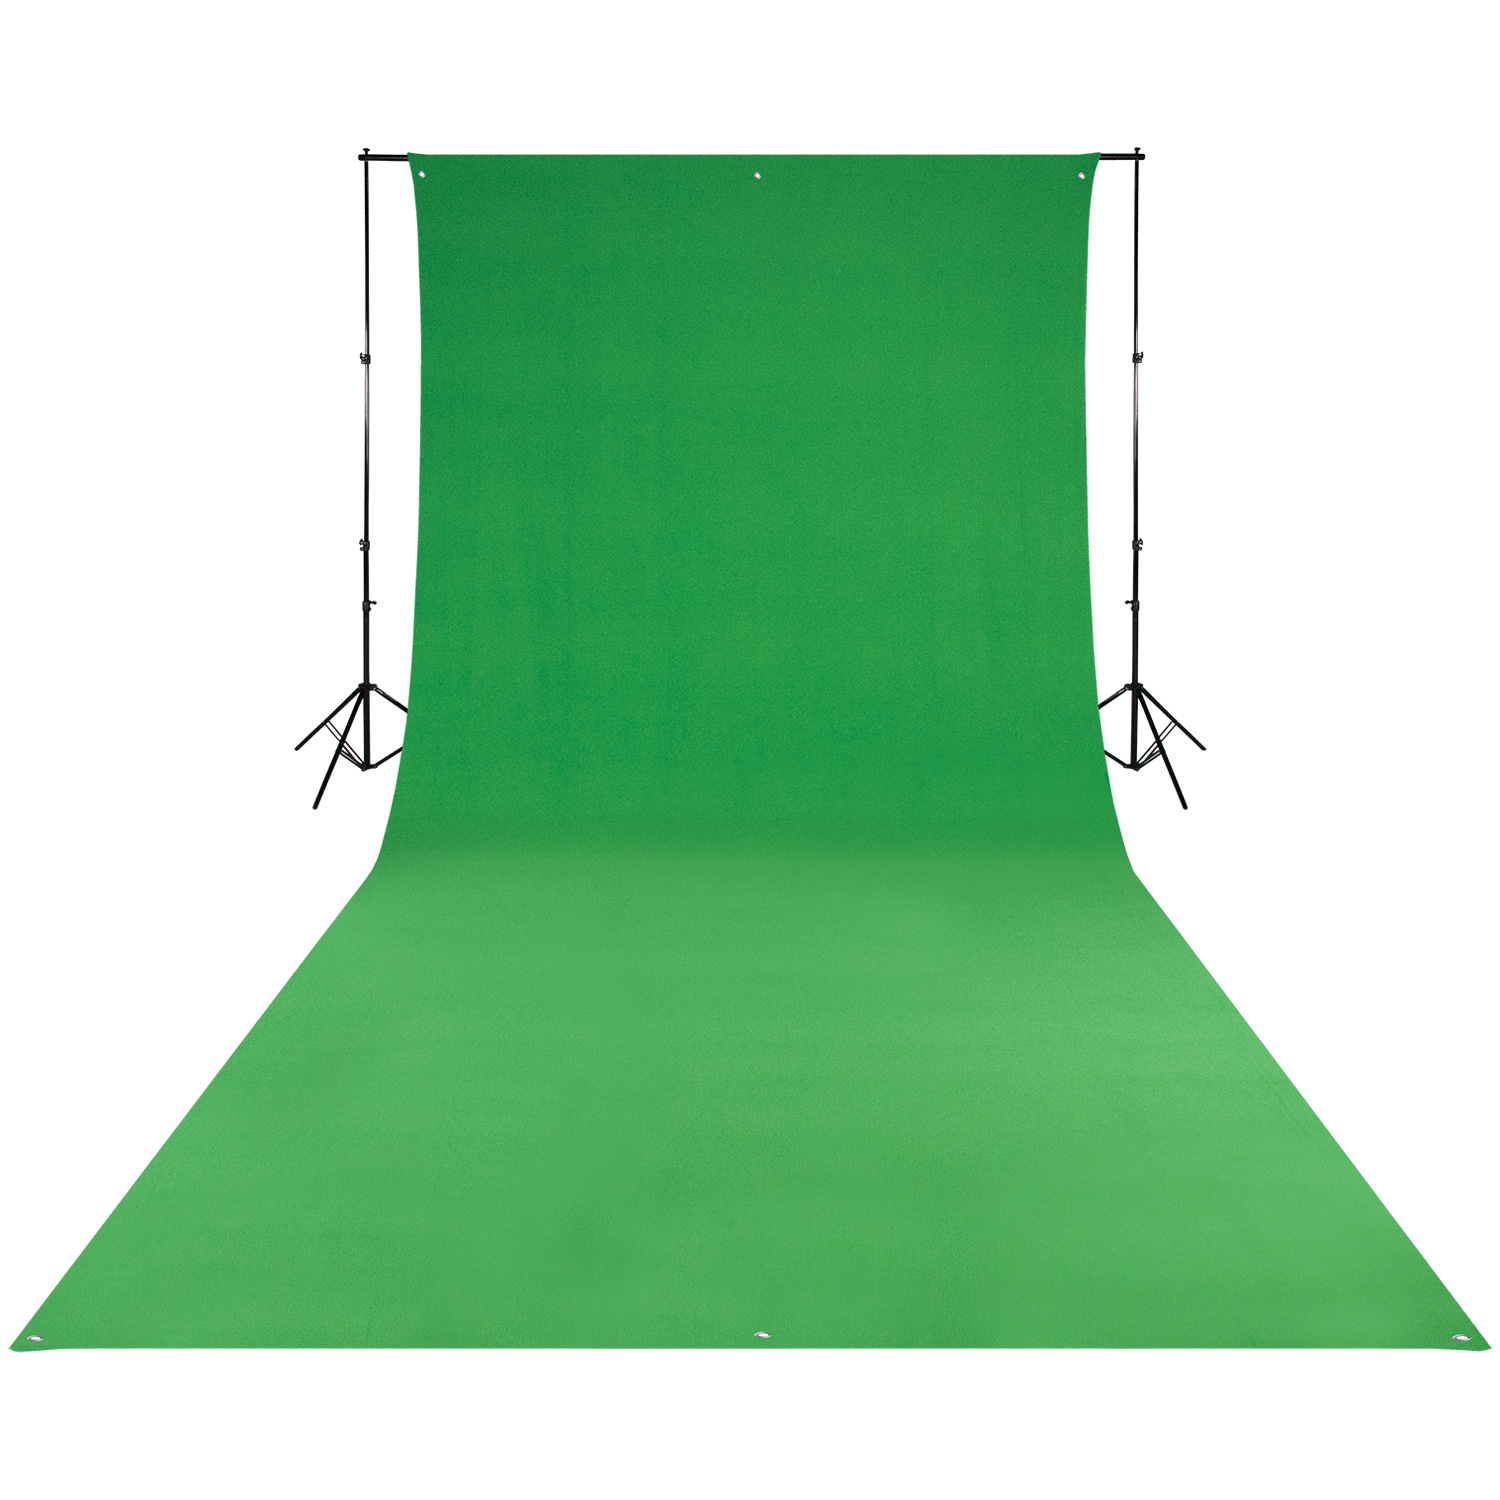 Wrinkle-Resistant 9' x 20' Green Screen Backdrop